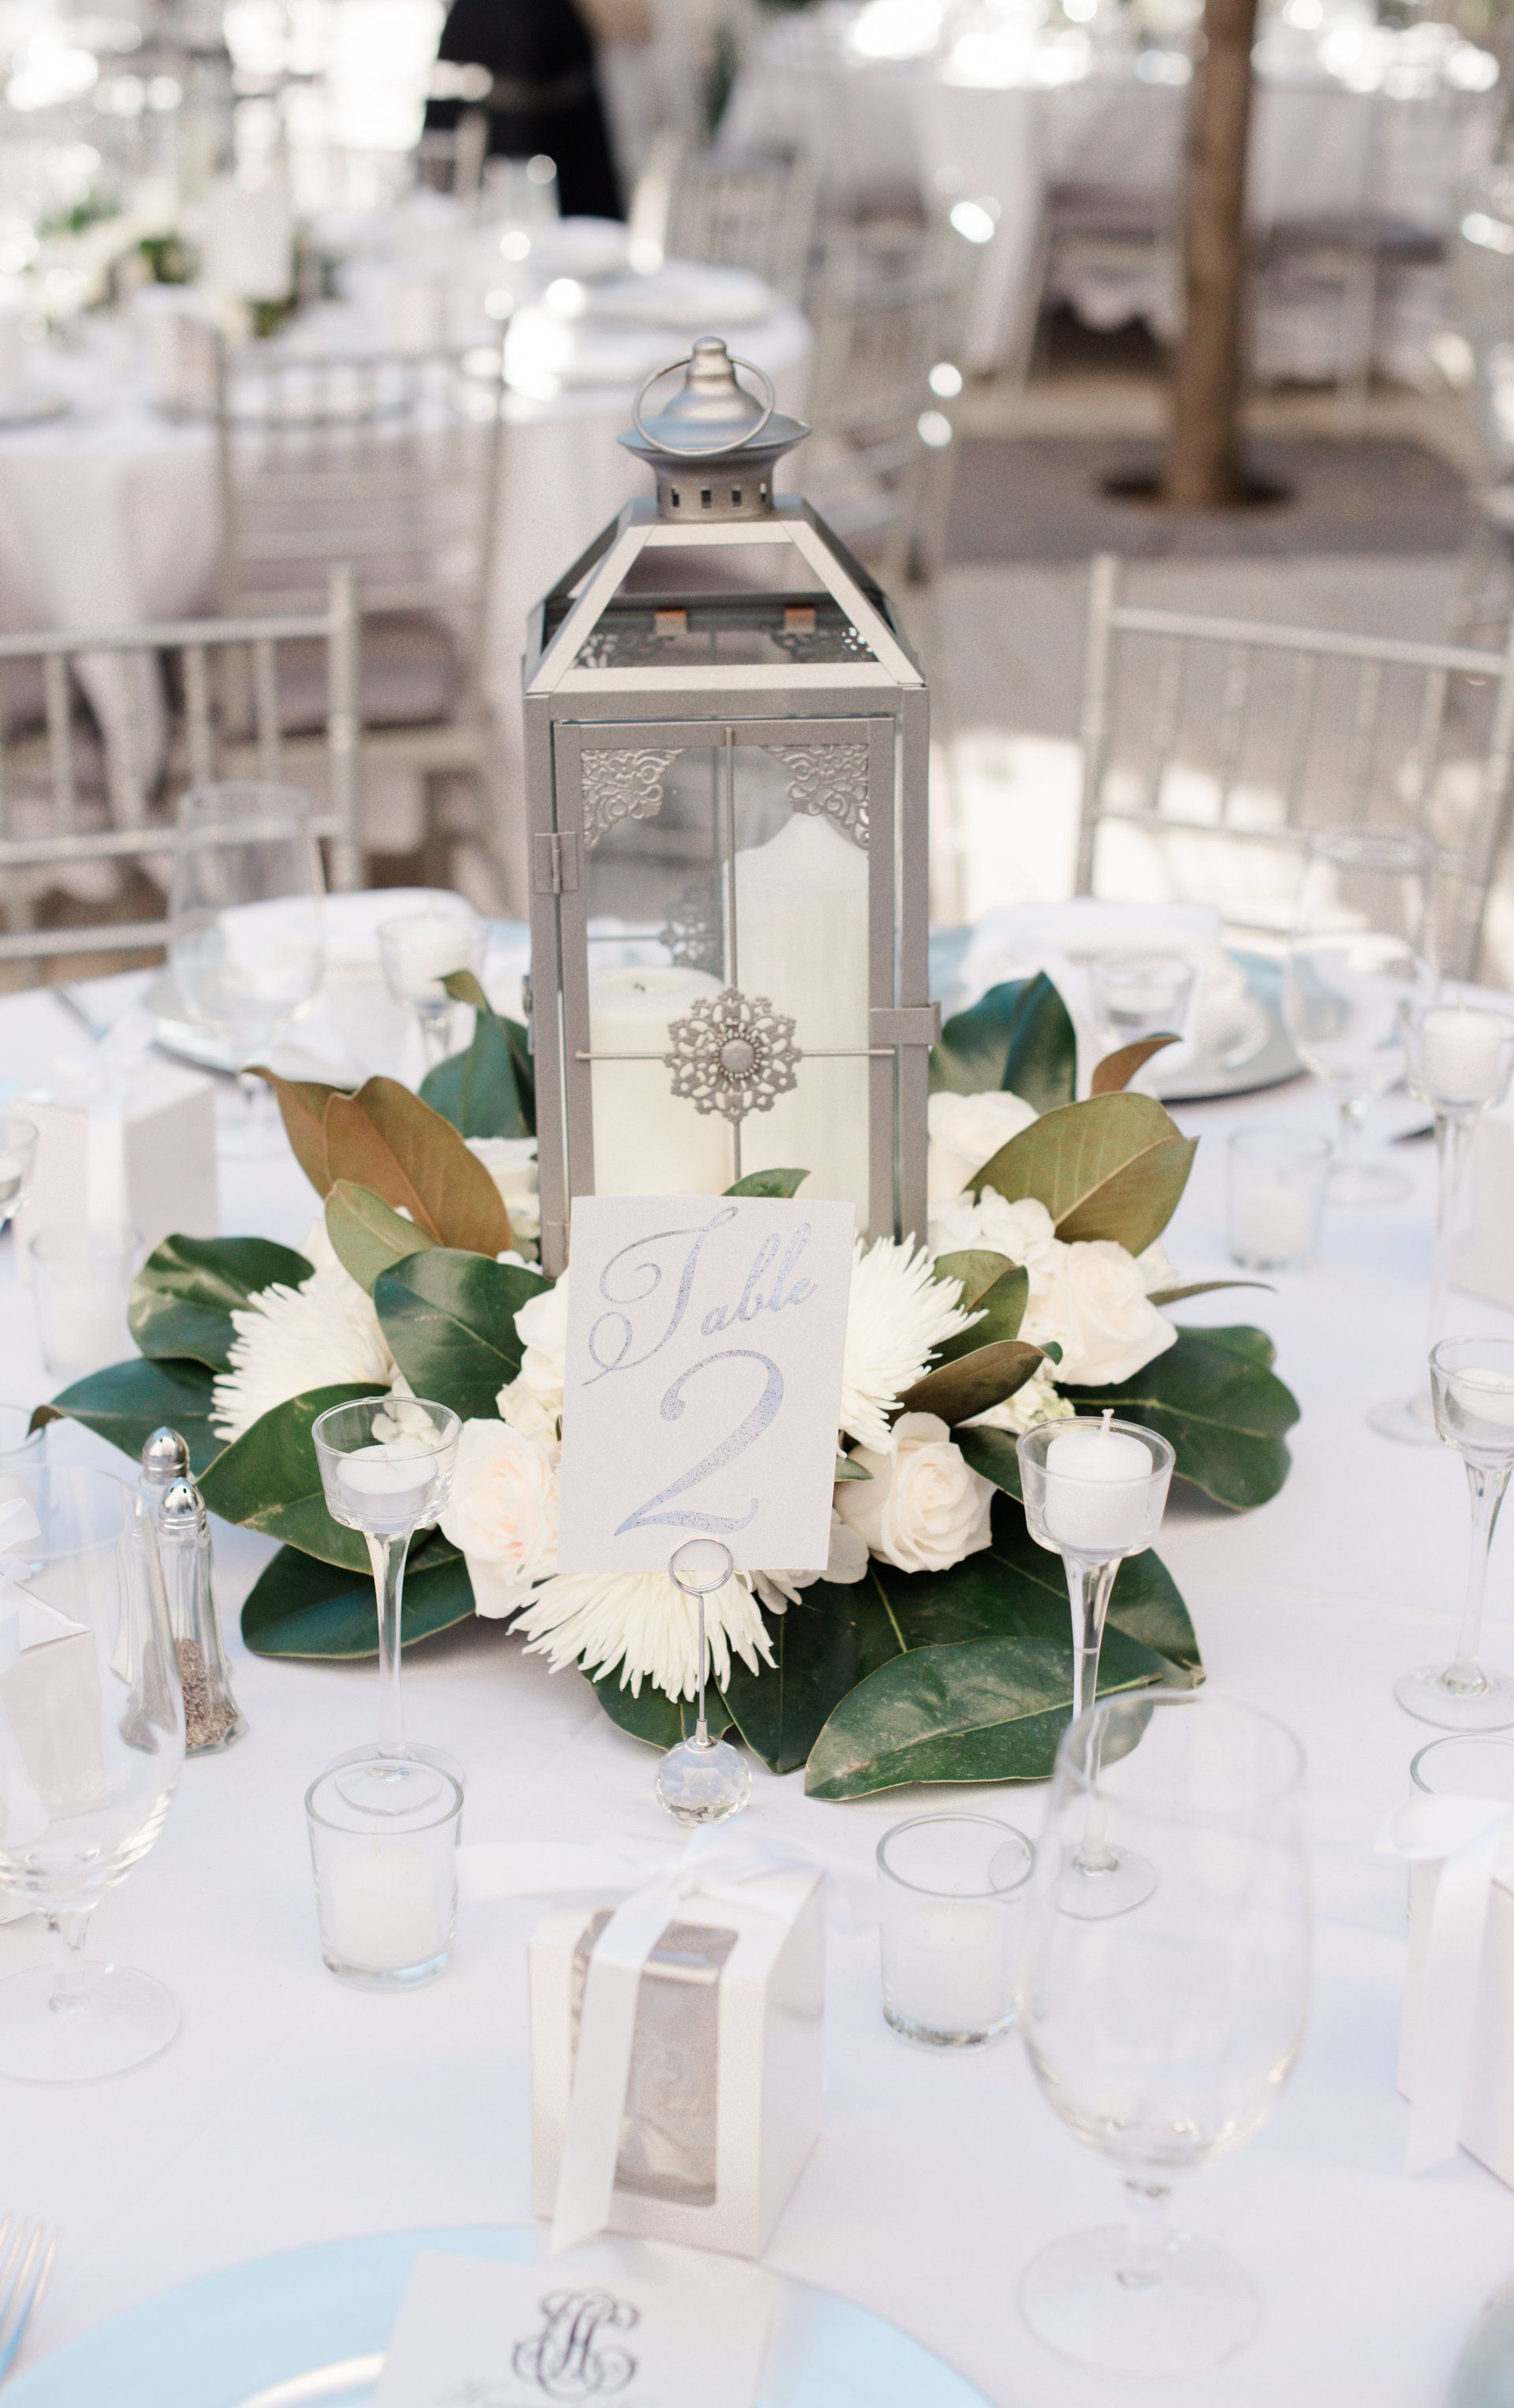 The Smarter Way to Wed | Wedding centrepieces, Centrepieces and ...